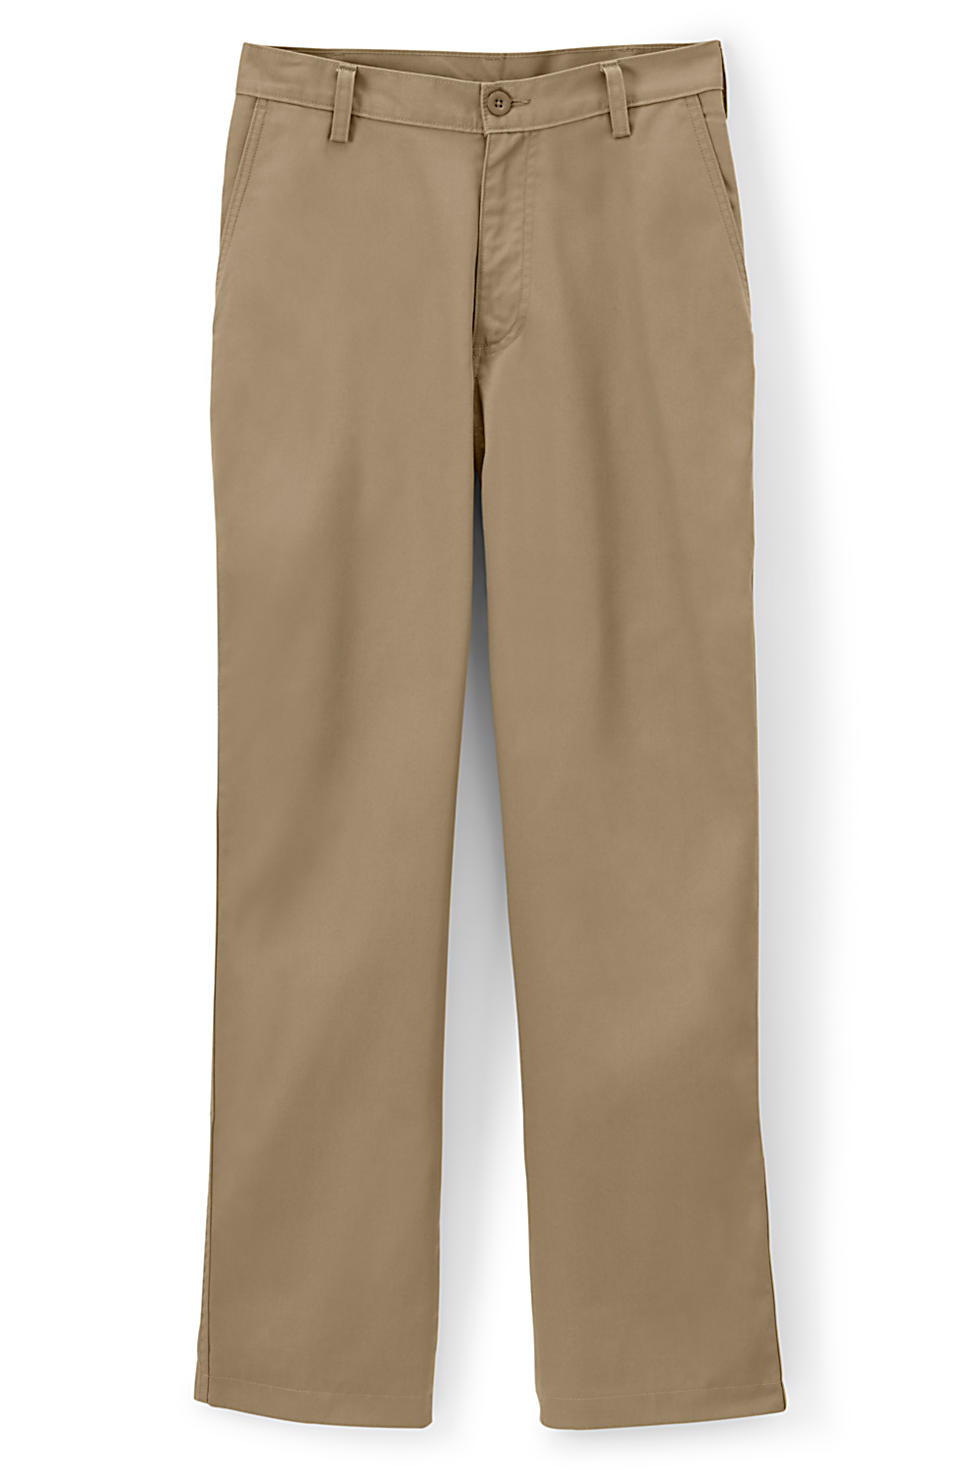 Lands End Men's Basic Work Pants